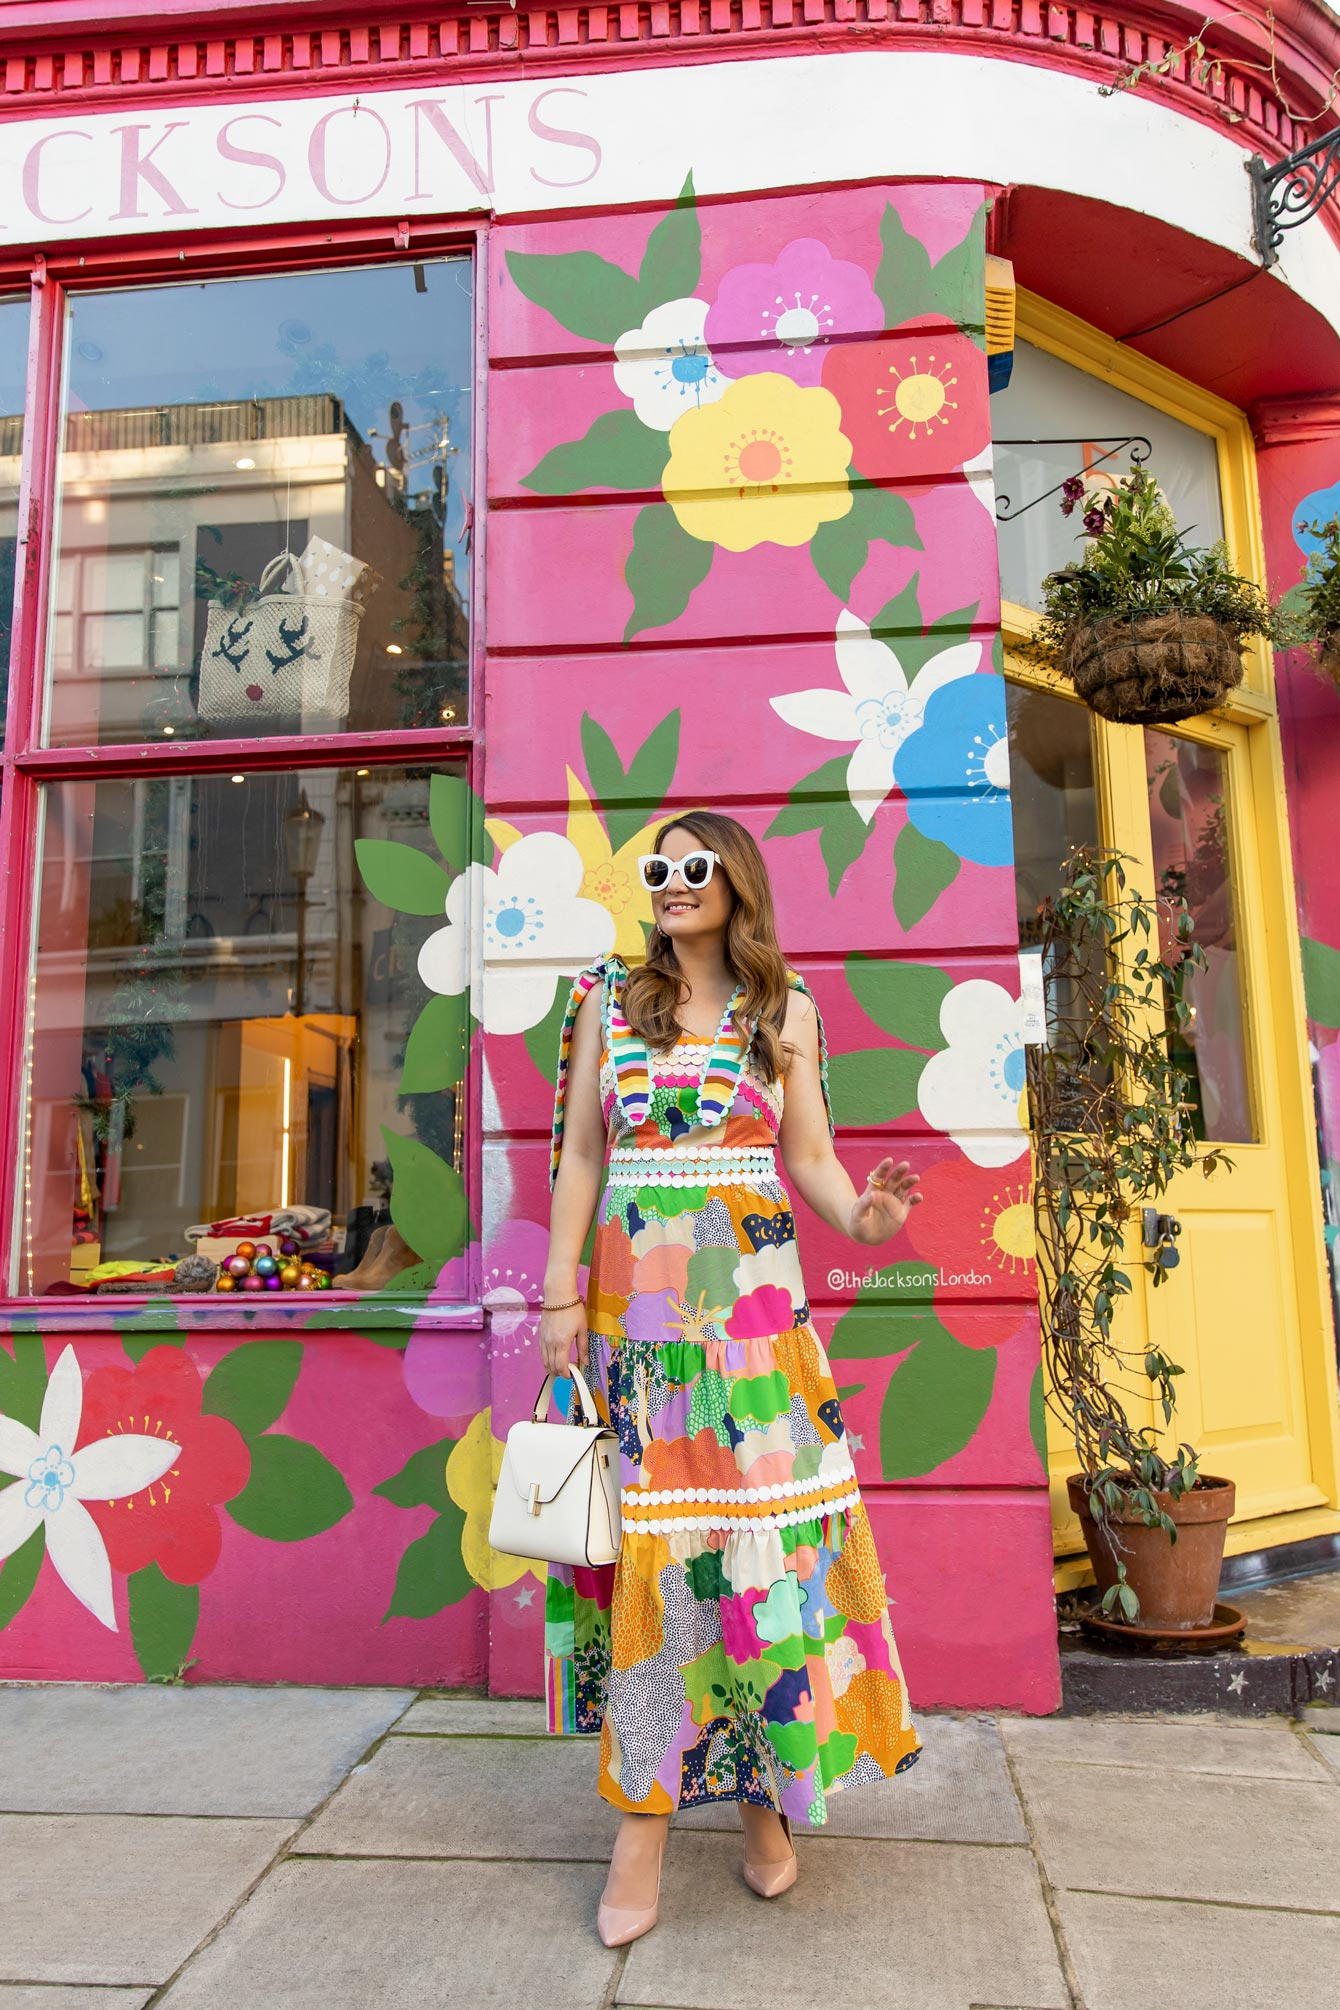 Notting Hill London Floral Mural